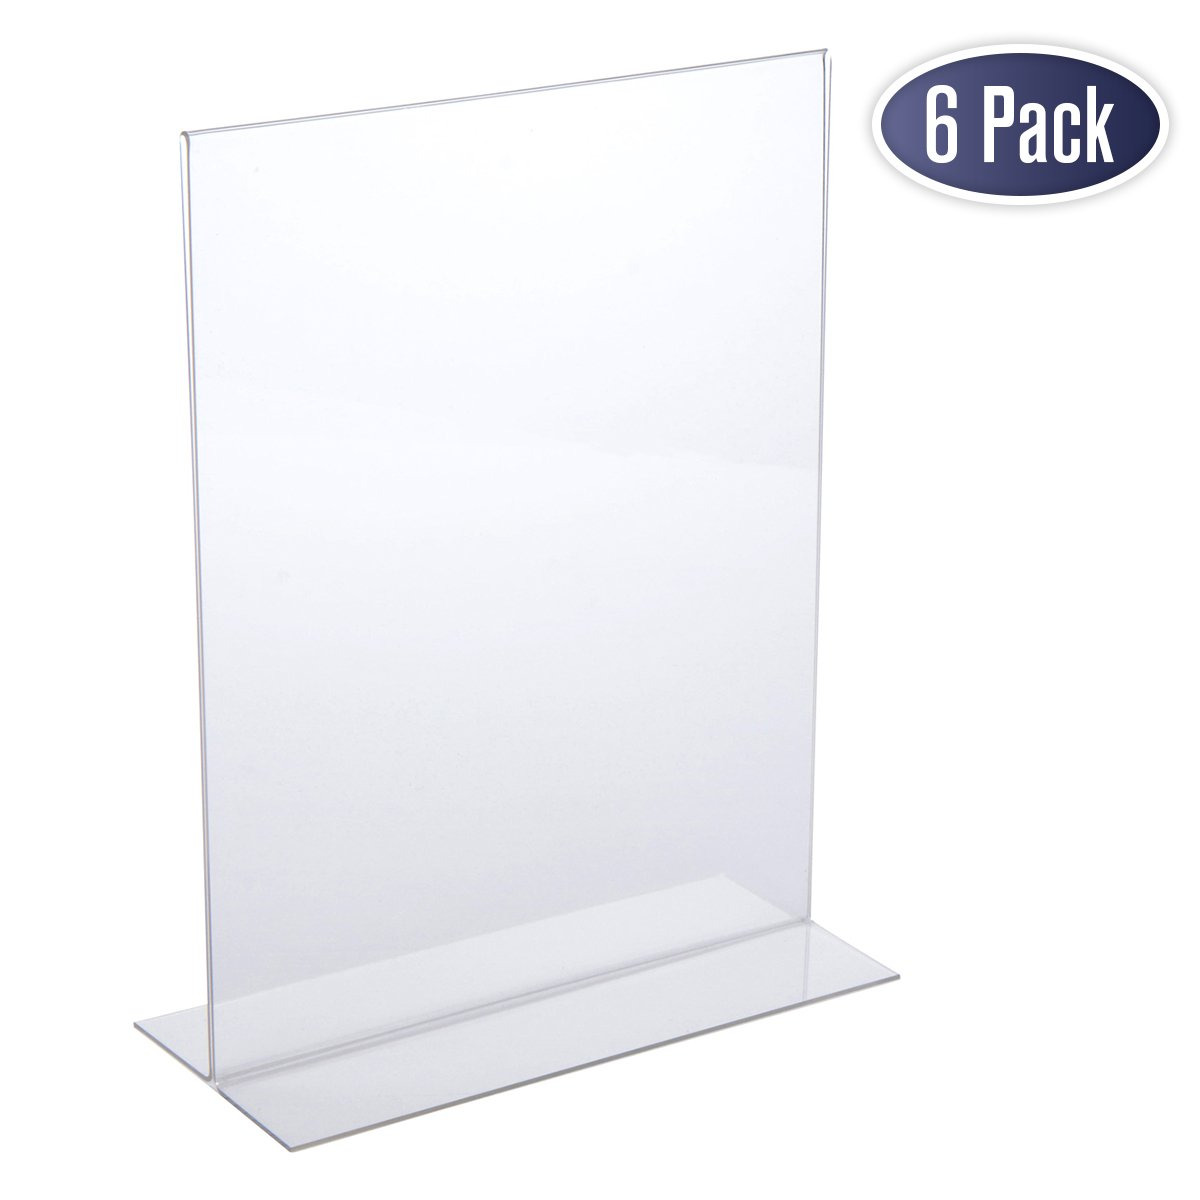 Acrylic Sign Holder 8.5 x 11 - Acrylic T Shape Table Top Display Stand, Double Sided, Bottom Load, Portrait Style Menu Ad Frame. Perfect for Restaurants, Promotions, Photo Frames, Classroom (6 Pack) by Dasher Products